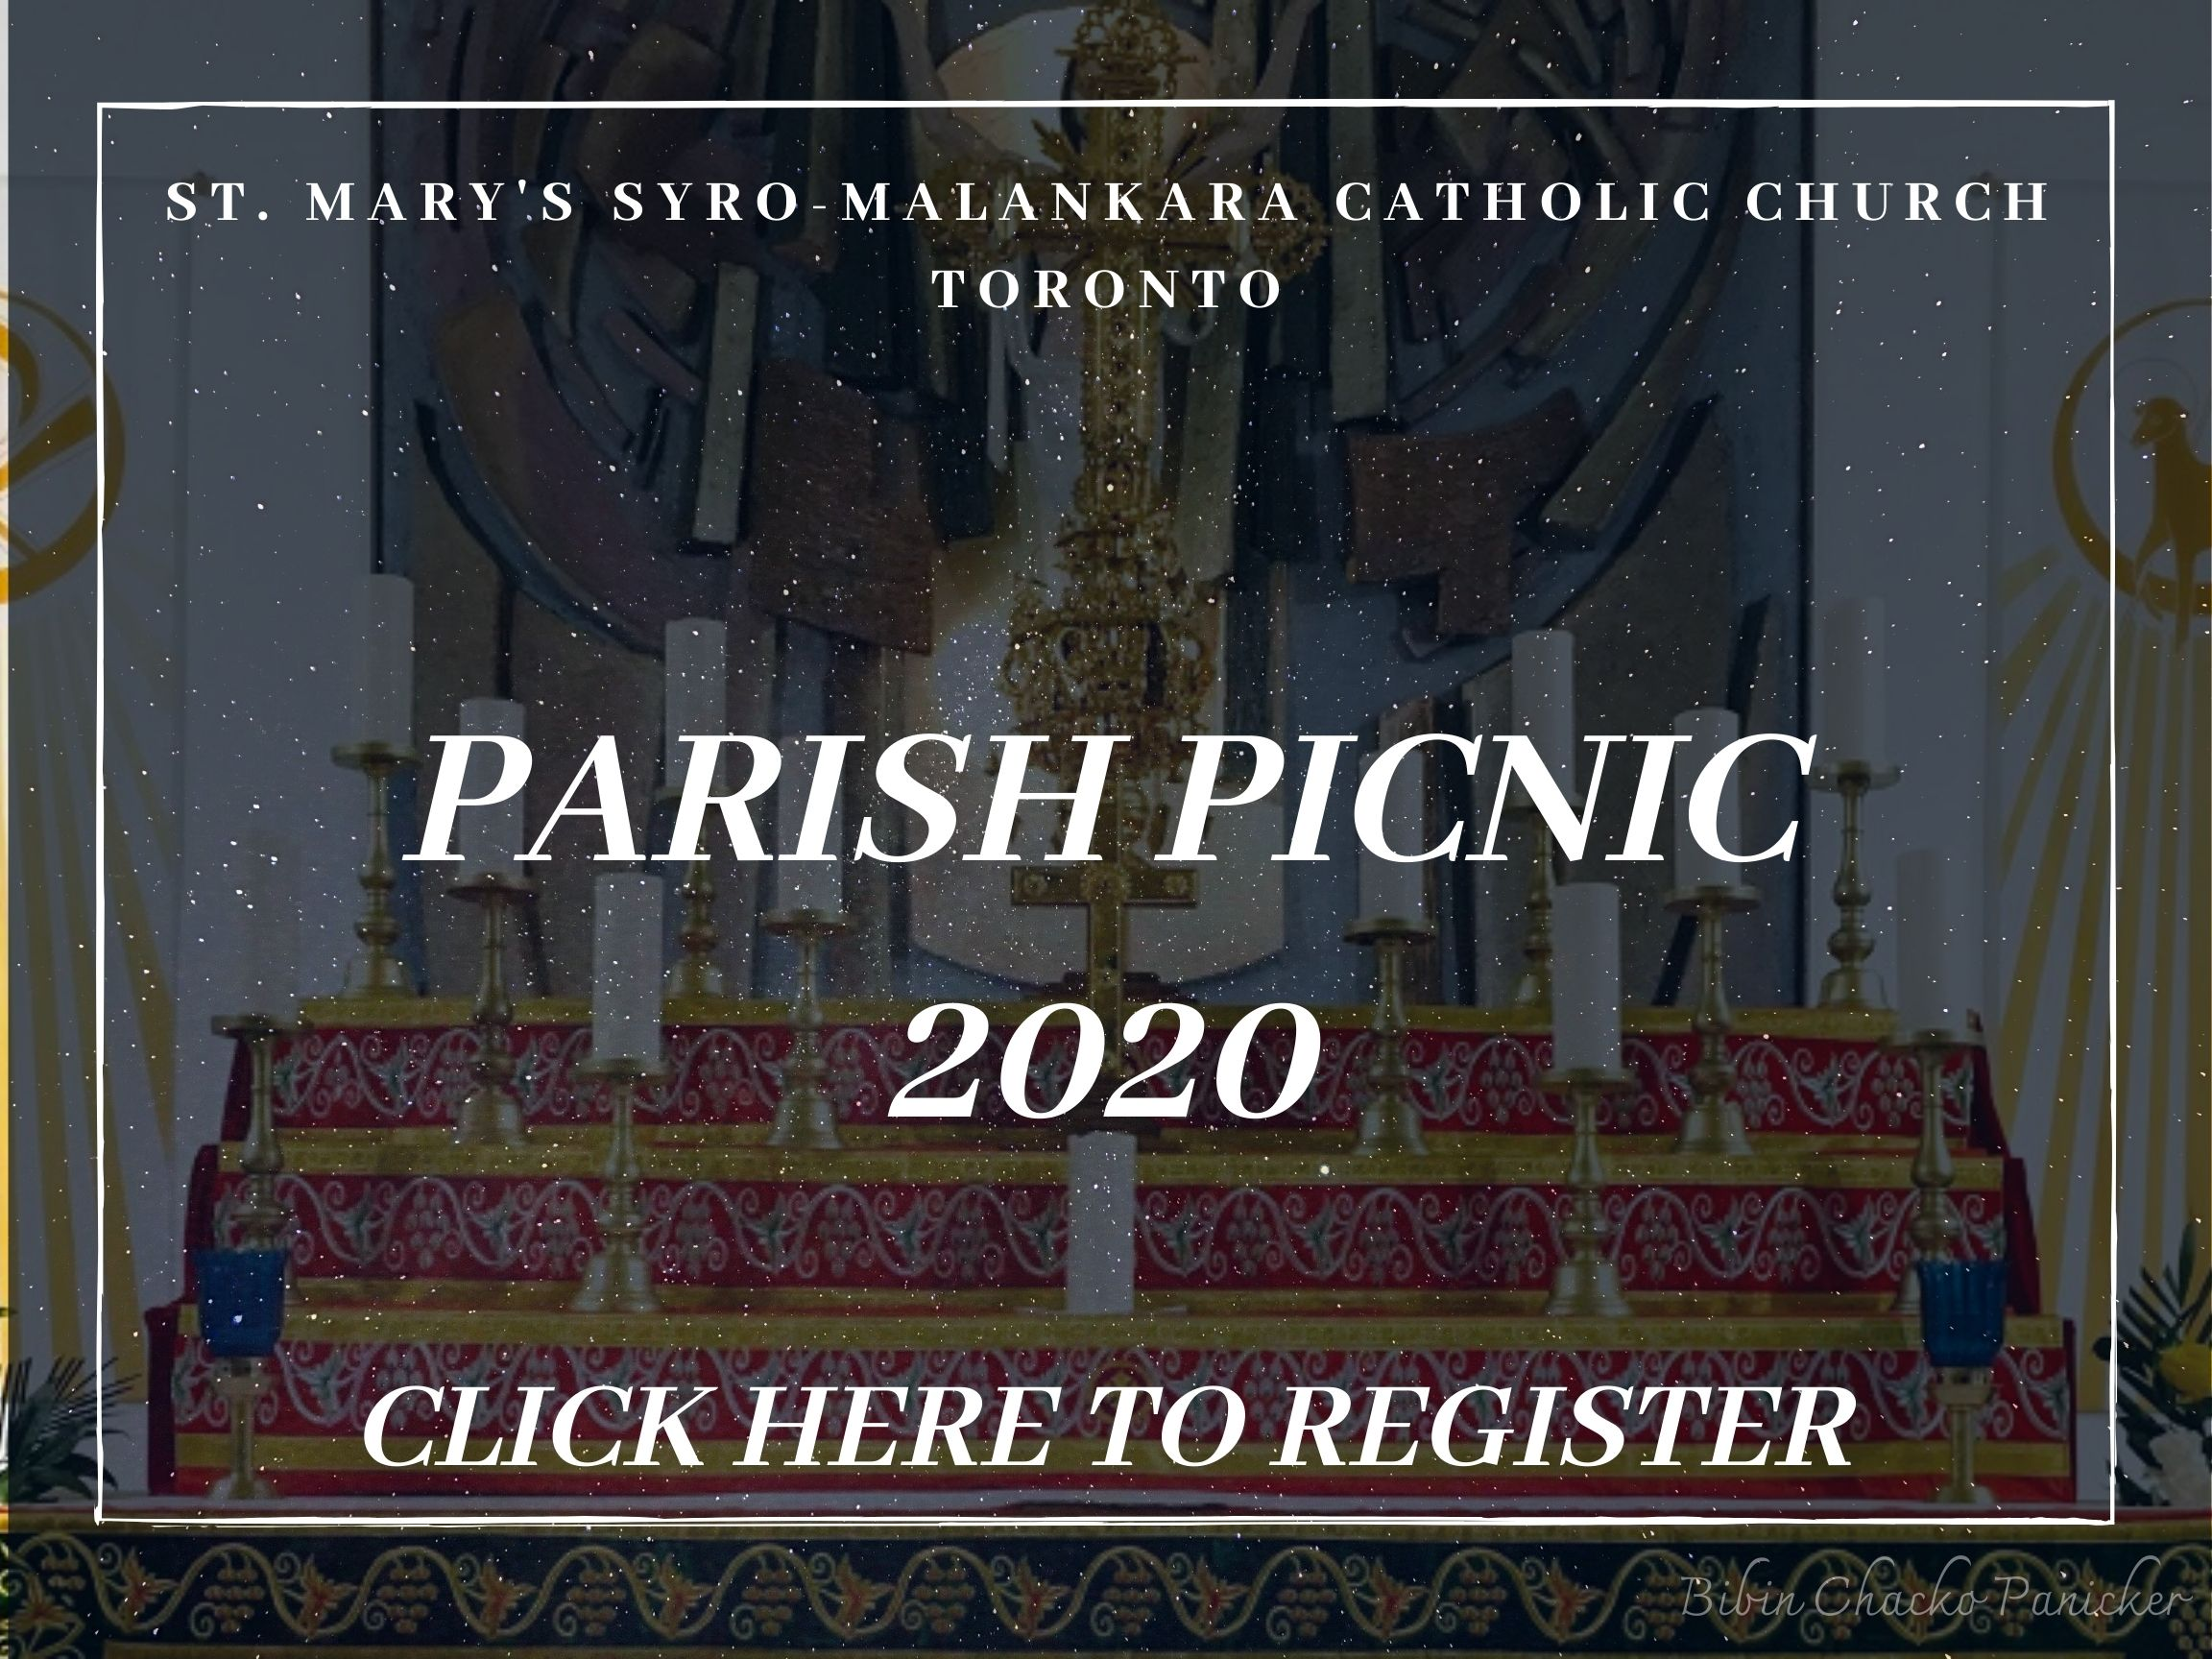 Parish Picnic 2020 sign up - St Marys' Syro-Malankara Catholic Church, Toronto